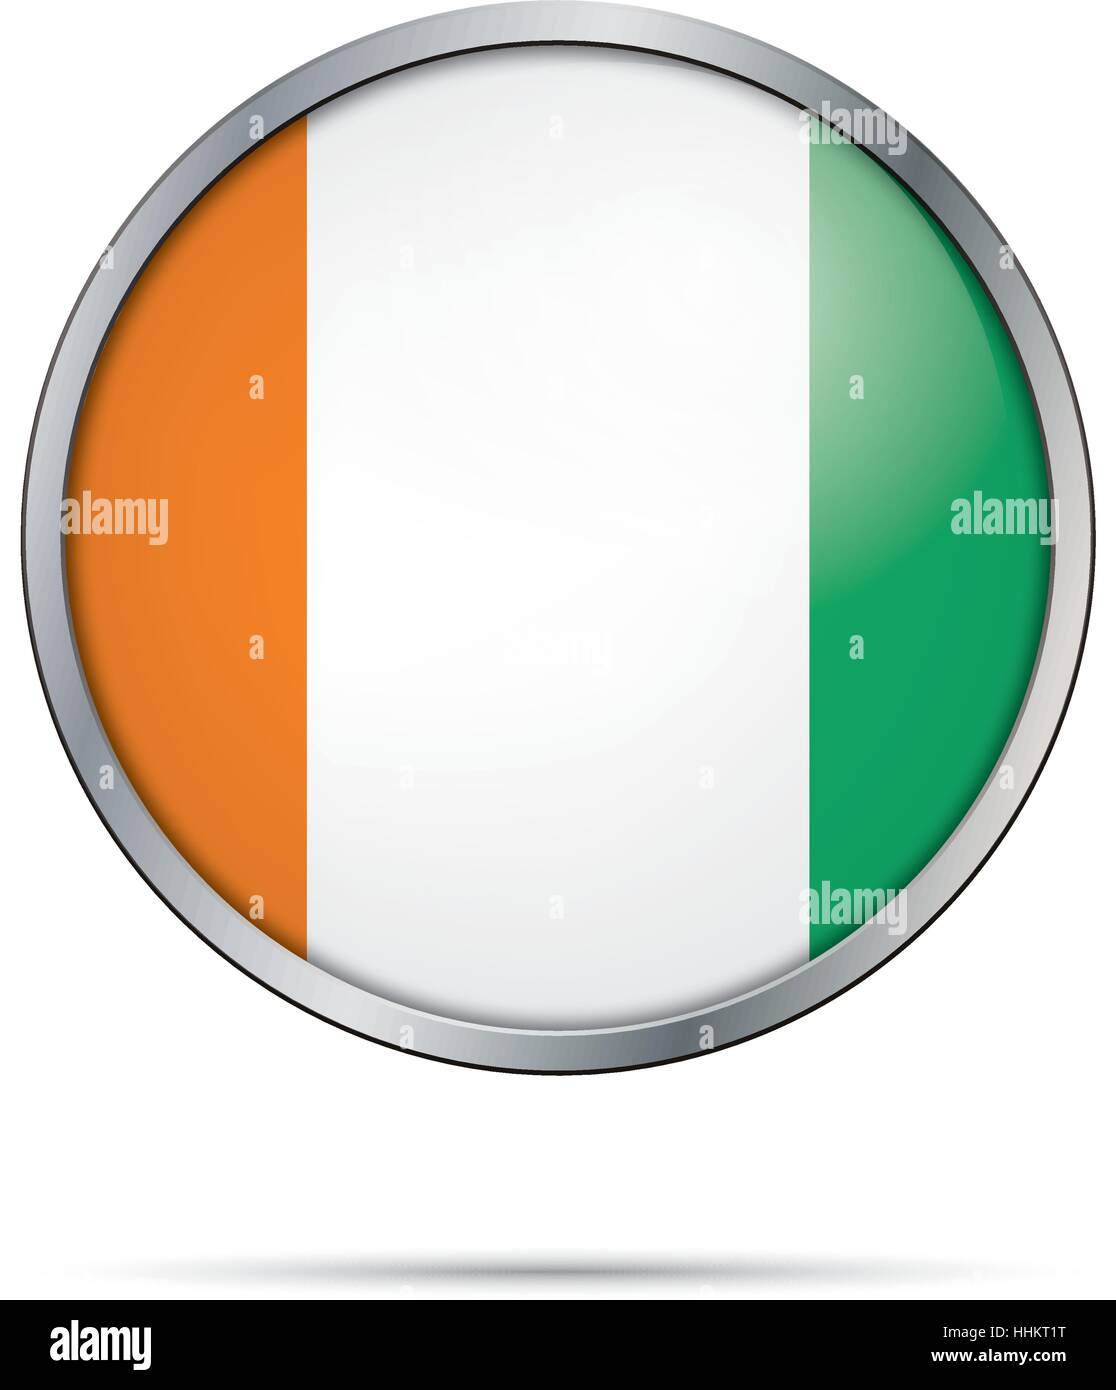 Vector Côte d'Ivoire flag in glass button style with metal frame - Stock Image